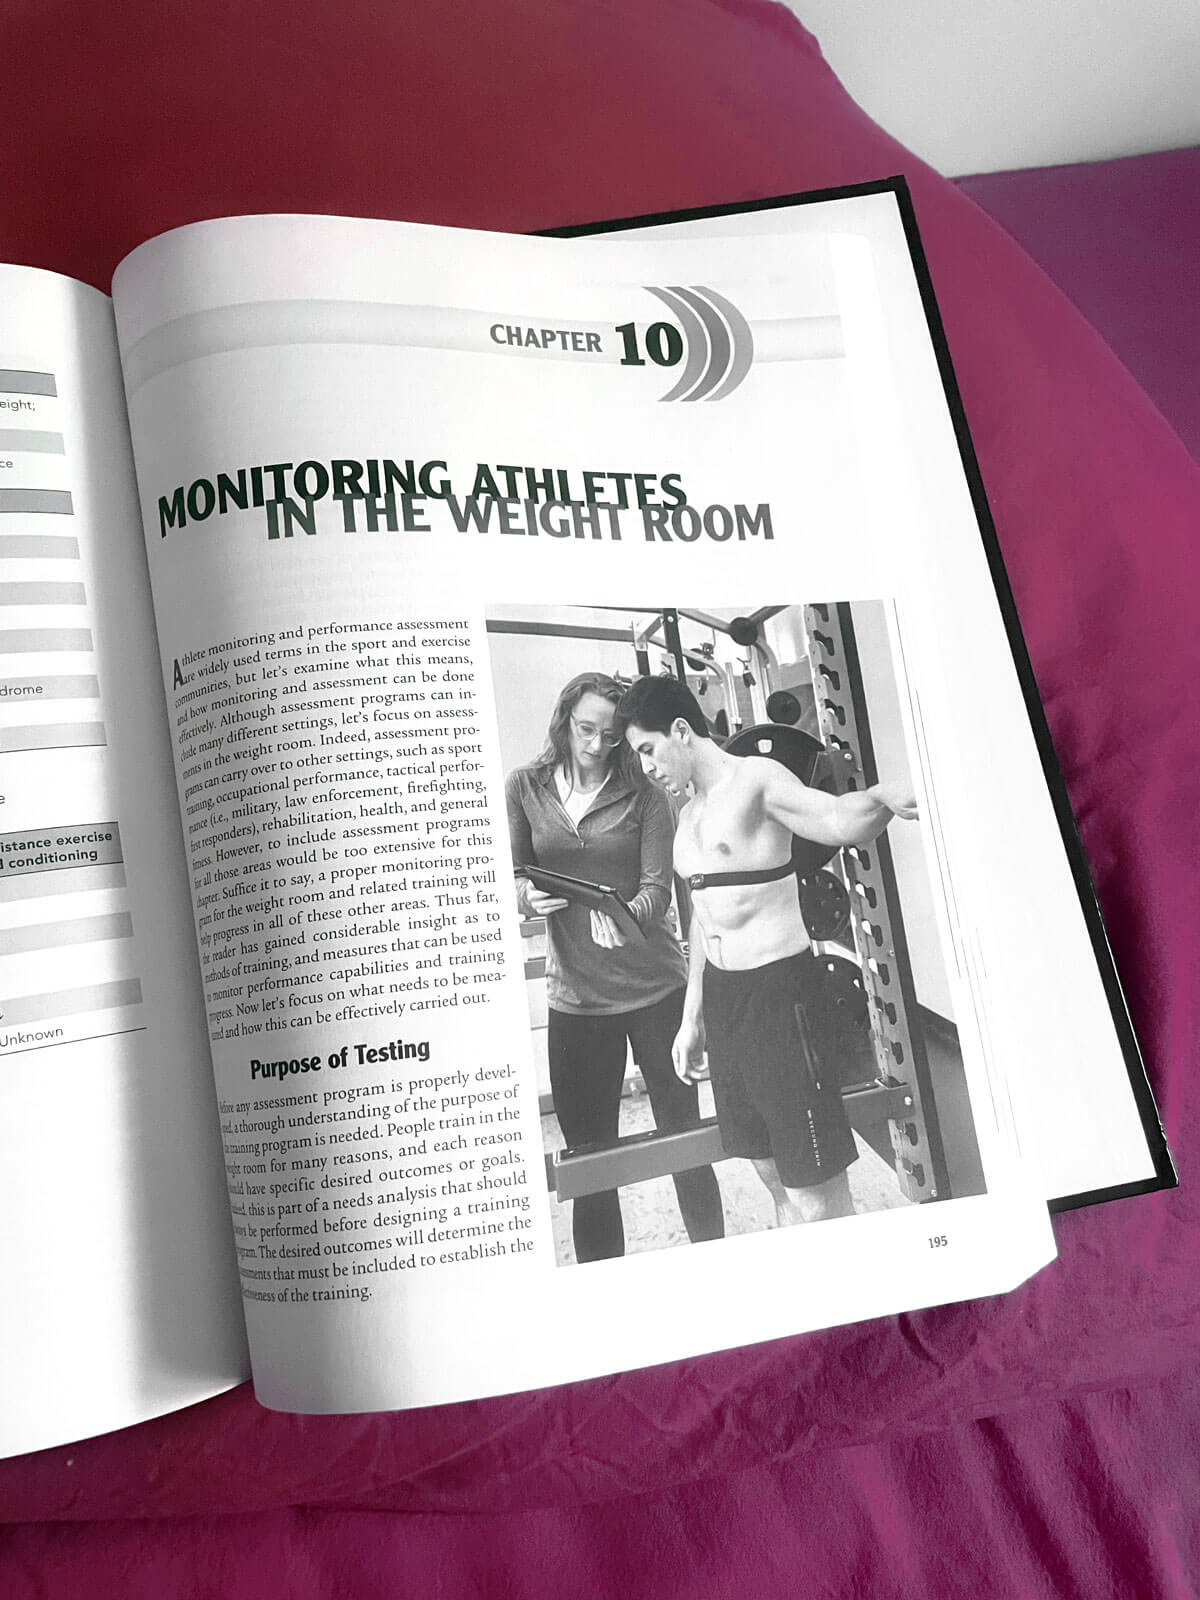 Science and Practice of Strength Training by Vladimir Zatsiorsky - Chapter 10